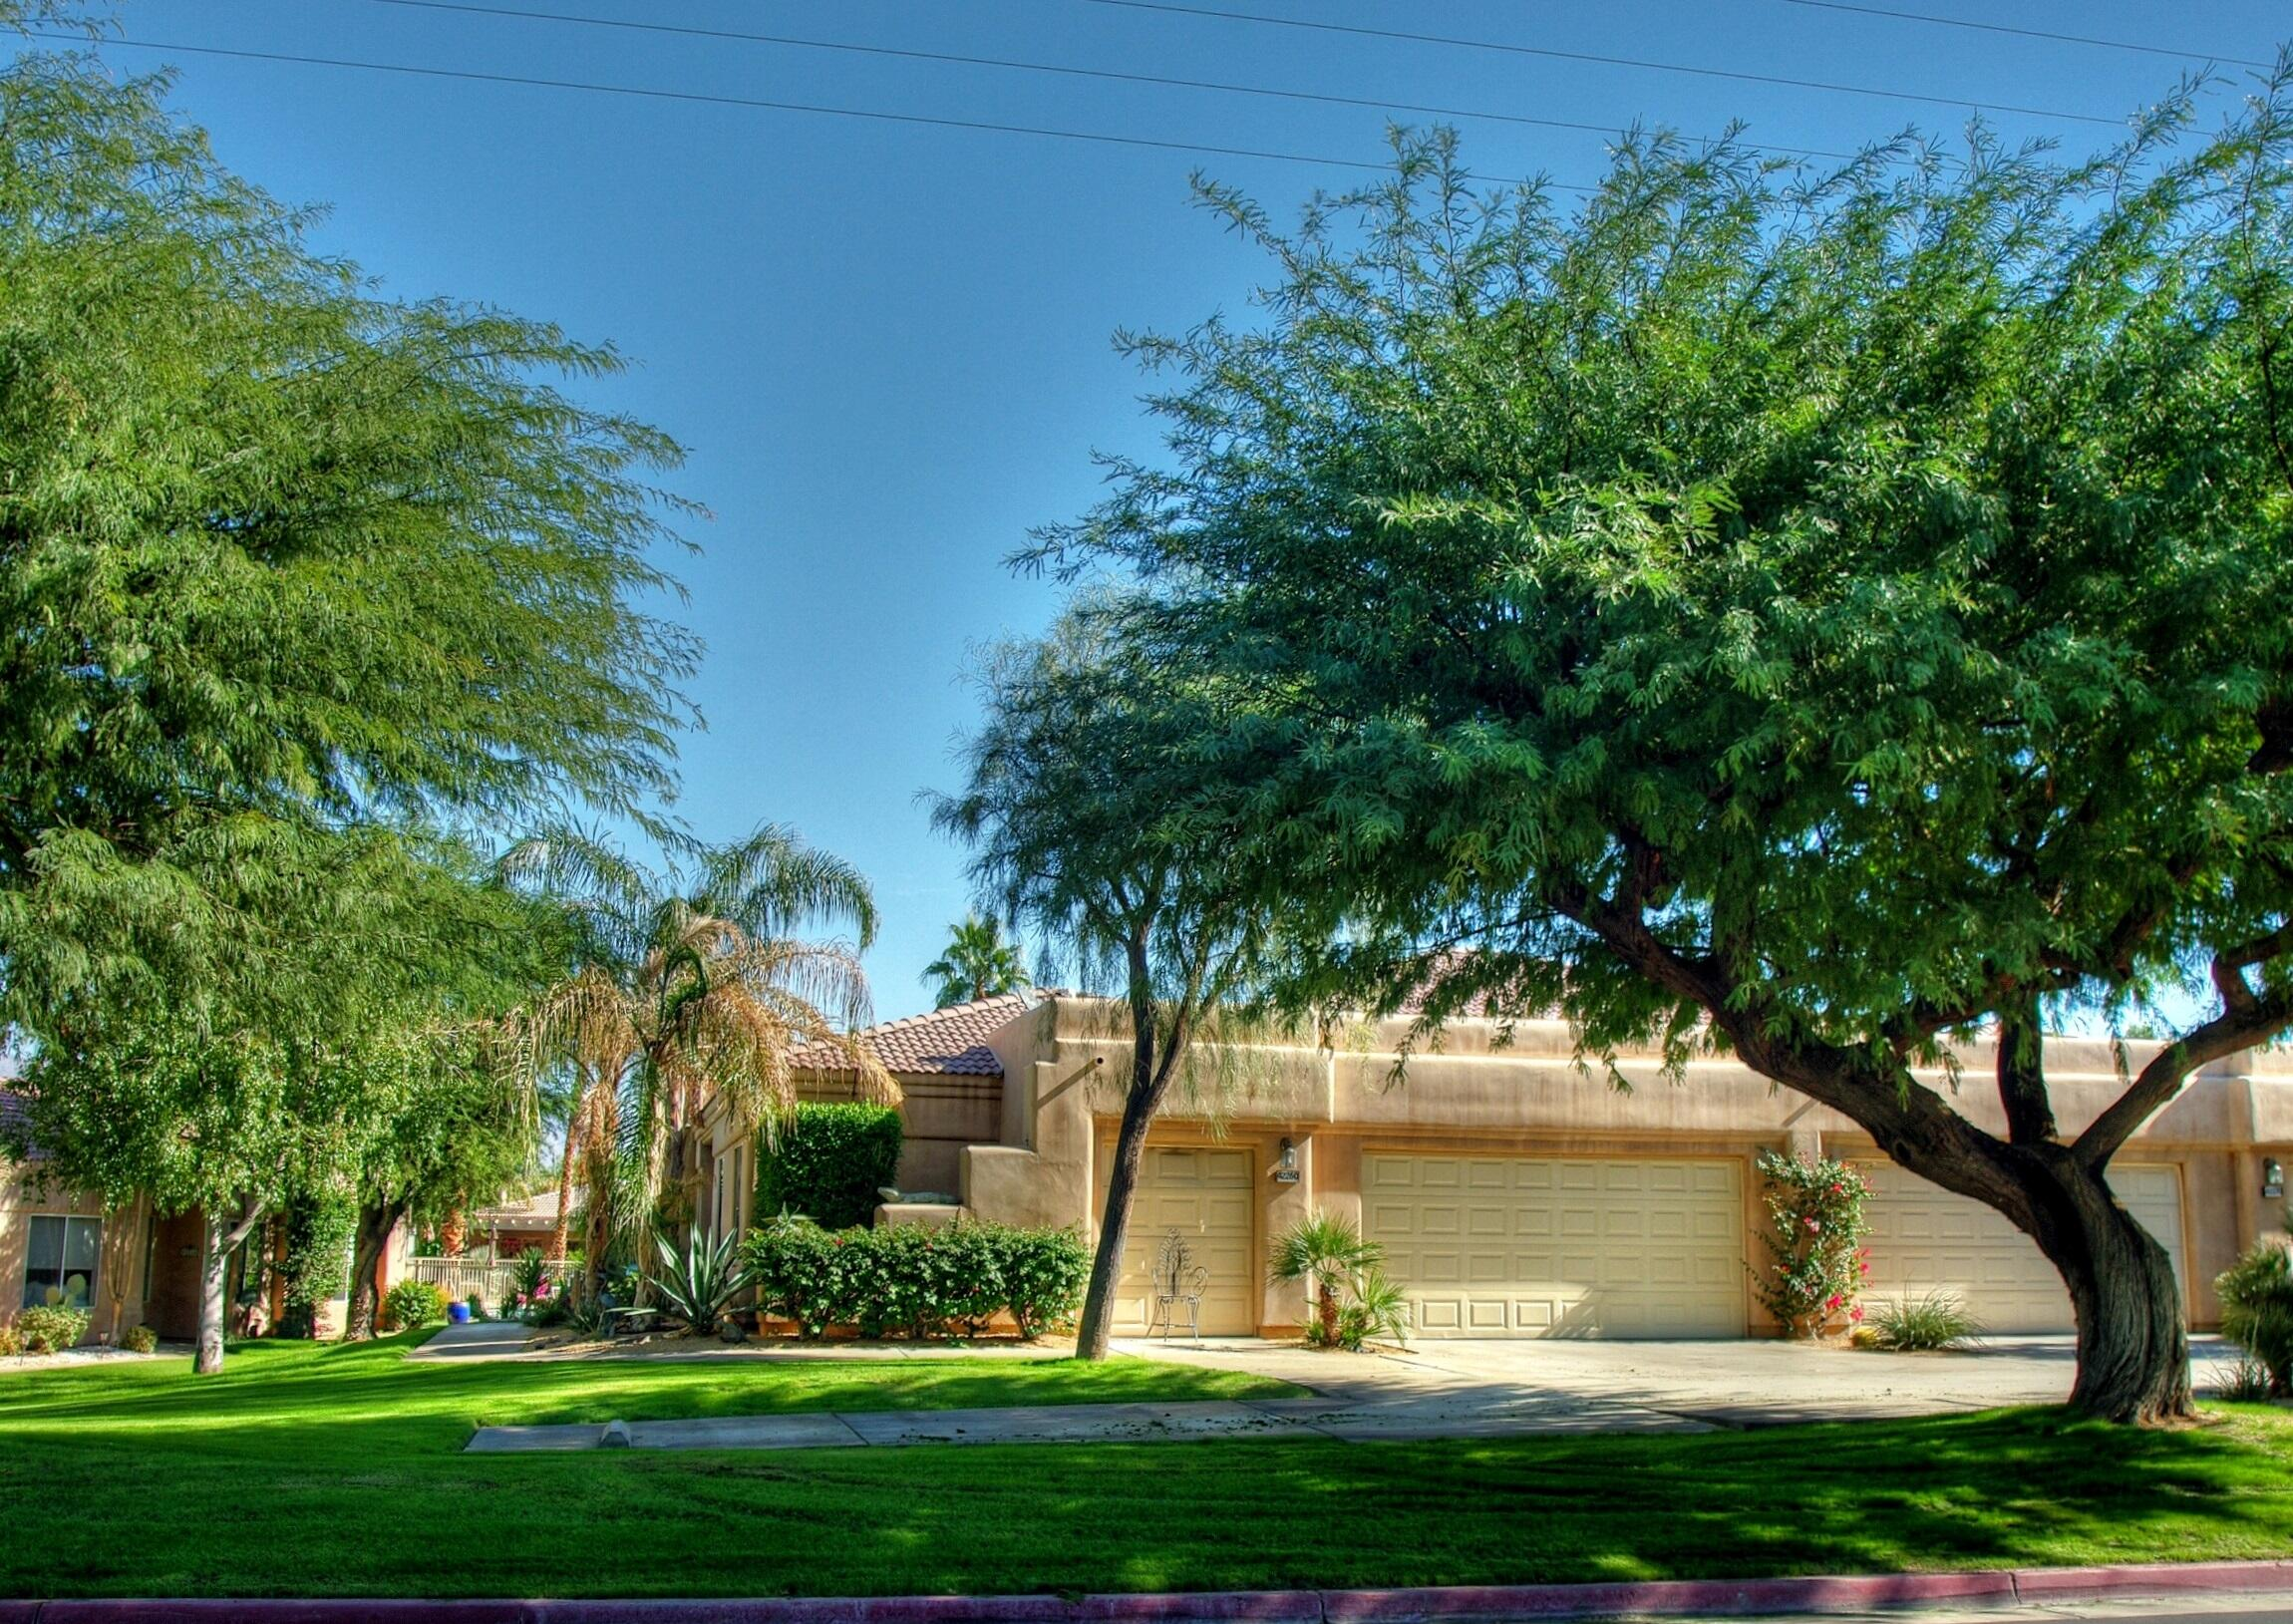 This highly upgraded 3 BR, 2 BA condo is one of twenty paired patio homes in 'The Greens' in Bermuda Dunes CC! With 1972 sf of living space, the large, open living room and formal dining area feature tile floors, stack stone fireplace, Plantation shutters and French doors - with views and access to the community pool/spa. The kitchen offers bull-nose granite counters, custom cabinetry, stainless appliances, and cozy breakfast nook. The large master suite features high ceilings with clerestory windows, separate seating area with French doors leading to the covered patio. The ensuite master bath has a double vanity, step-in shower, and large walk-in closet. The 2nd and 3rd bedrooms are perfect for family or overnight guests. Enjoy the beautiful greenbelt and mountain views from the covered patio - complete with firepit and BBQ cook center. The large attached 2-car garage + golf cart garage has direct access into home. IID for lower electric. Security HOA of $199 includes cable TV with two boxes w/Showtime & HBO, plus internet (with Spectrum) plus security. Condo HOA of $499 includes gardening, pool & spa, water & trash. Minutes away from world class golf, tennis, dining and entertainment!